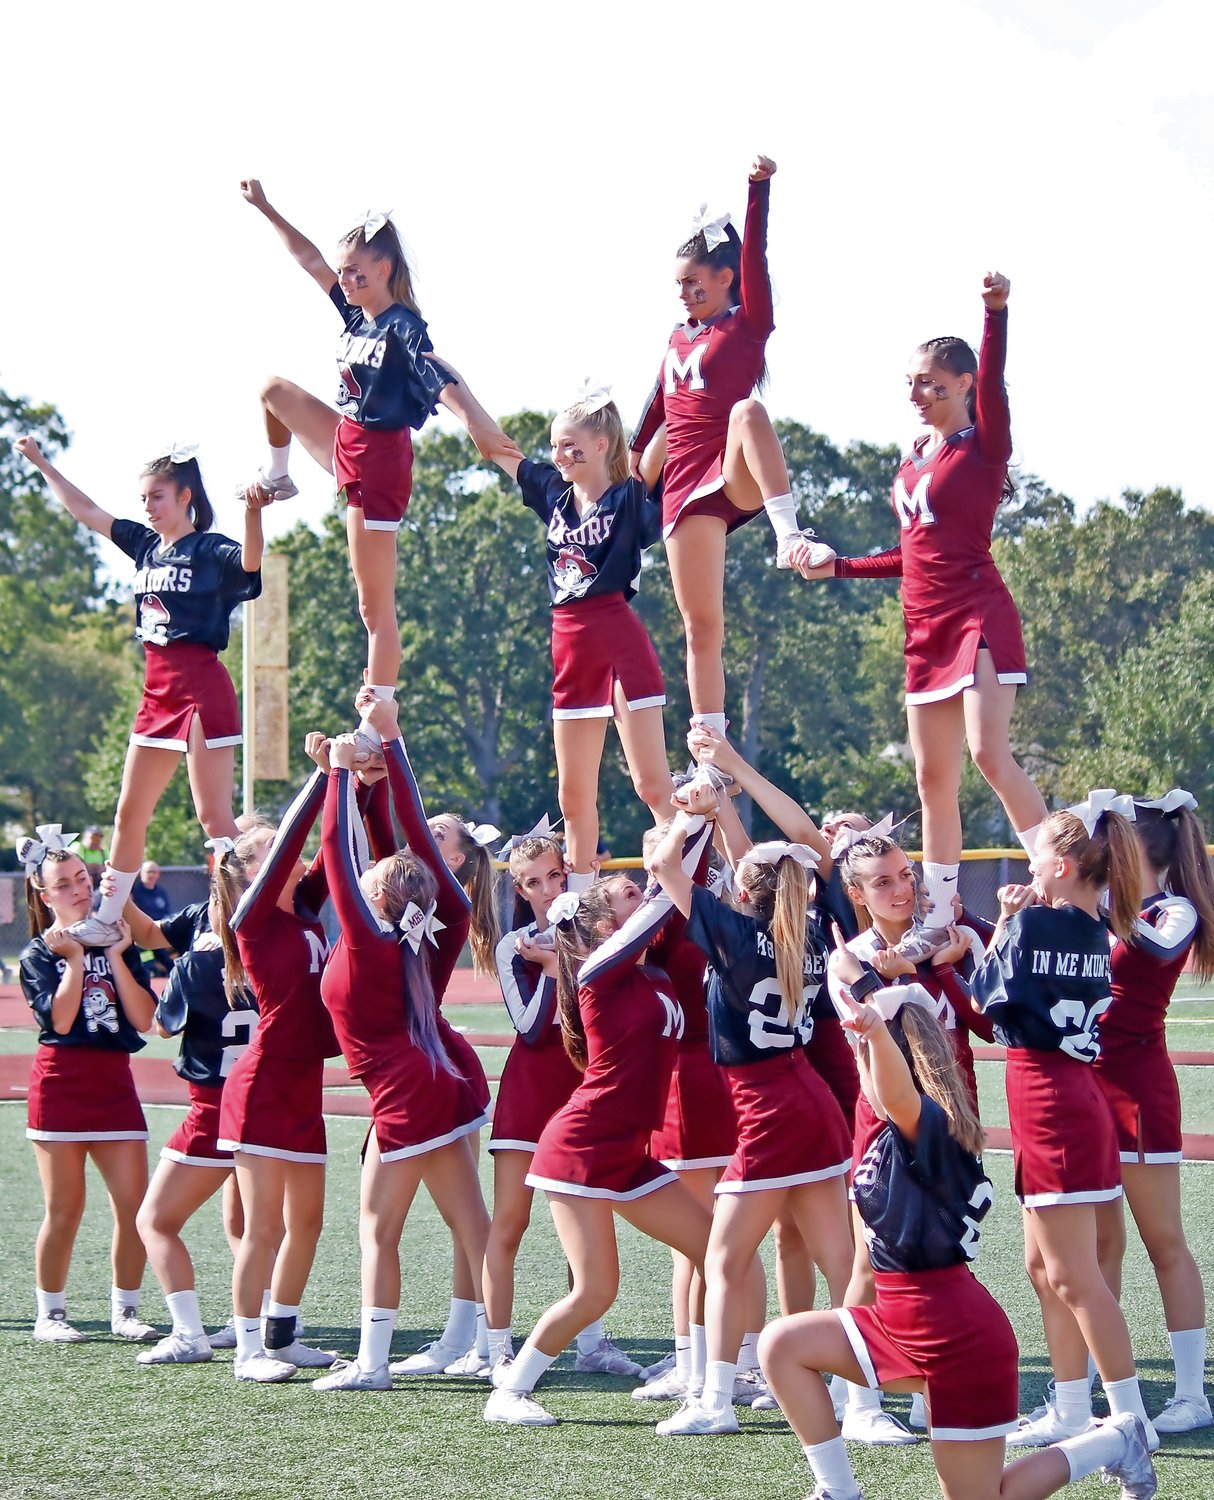 The Mepham cheer team warmed up for their halftime performance.